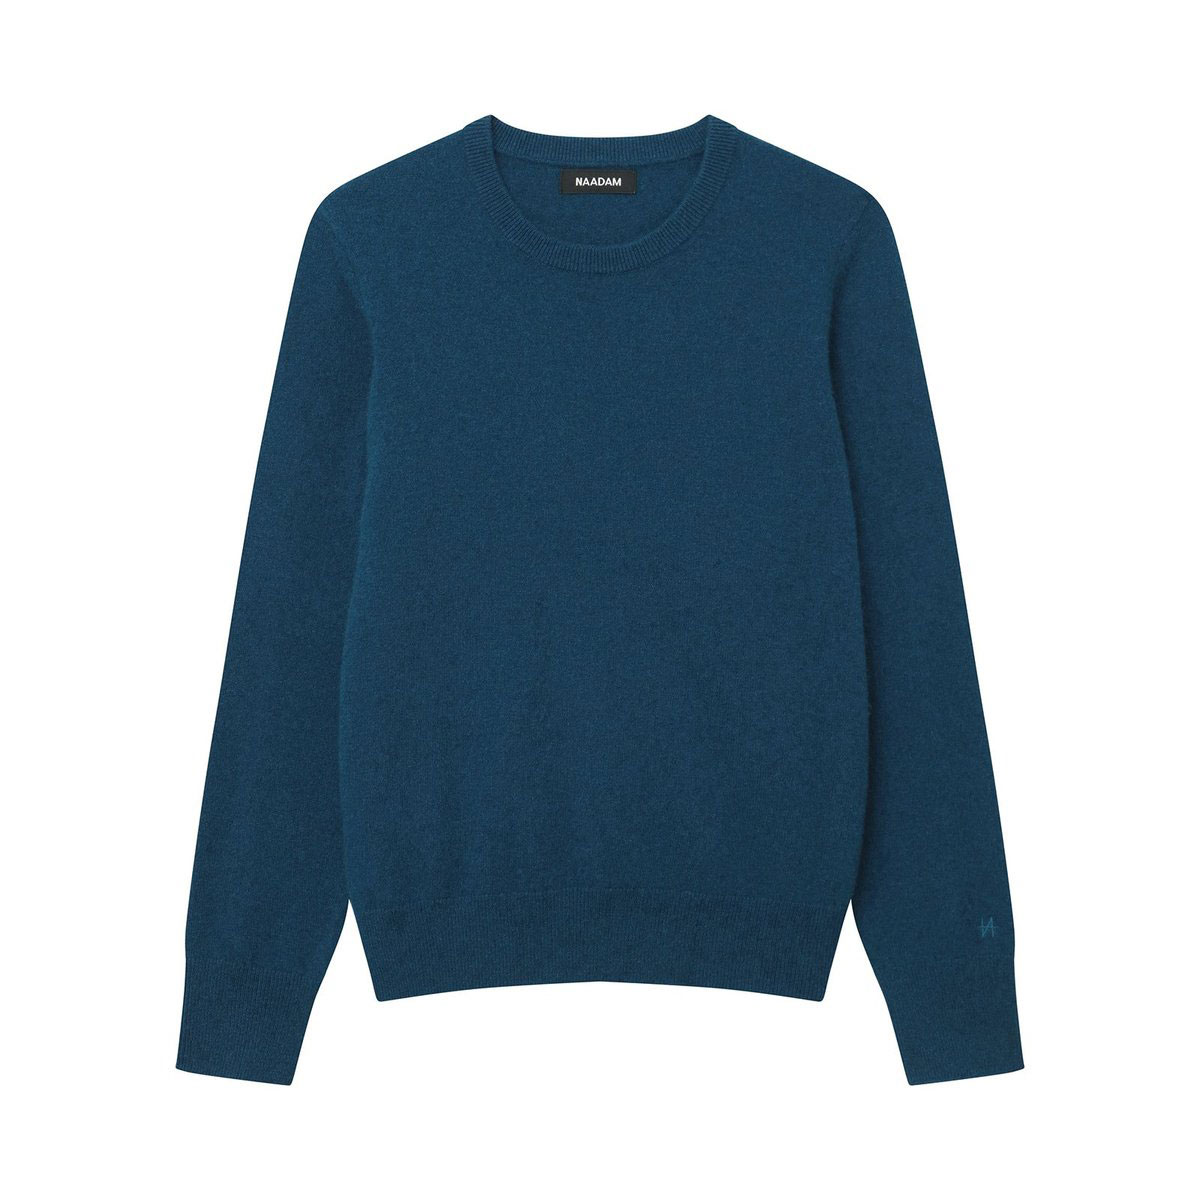 Best gifts, gift ideas for women - For the Budget-Savvy: Naadam Essential $75 Cashmere Sweater